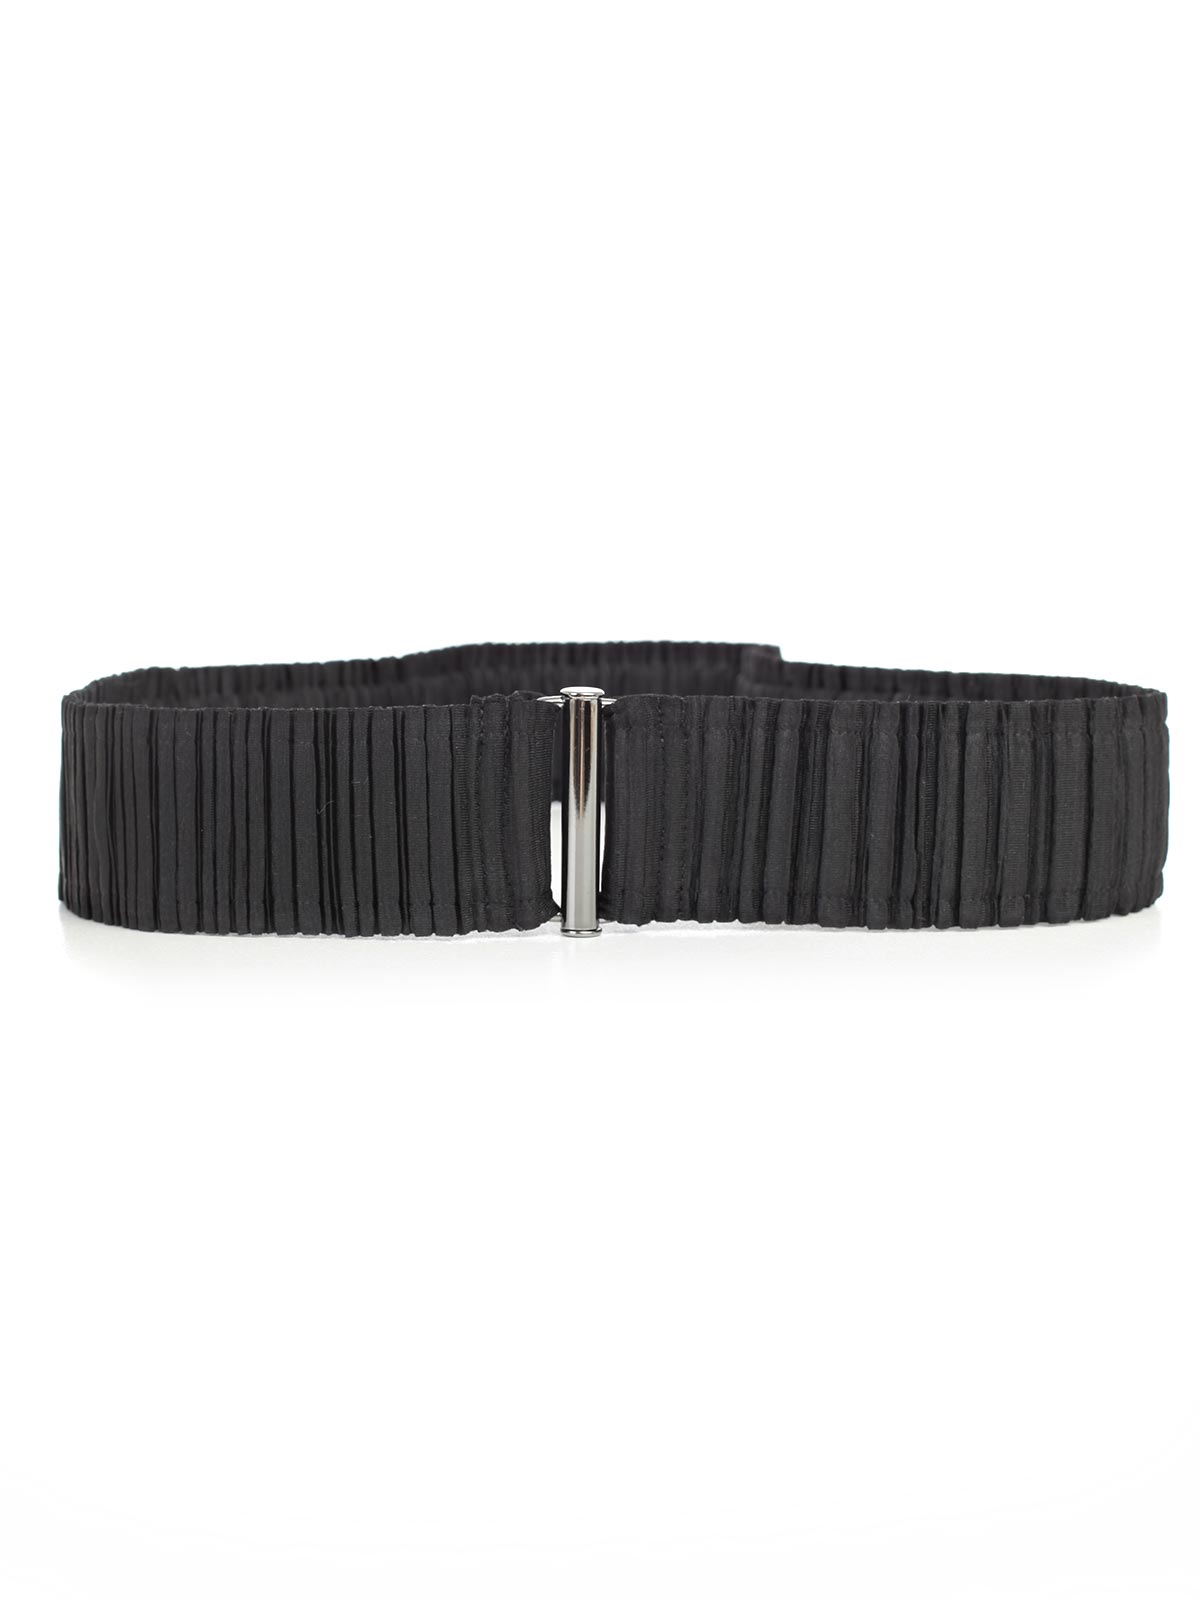 Picture of PLEATS PLEASE BY ISSEY MIYAKE BELT CINTURA